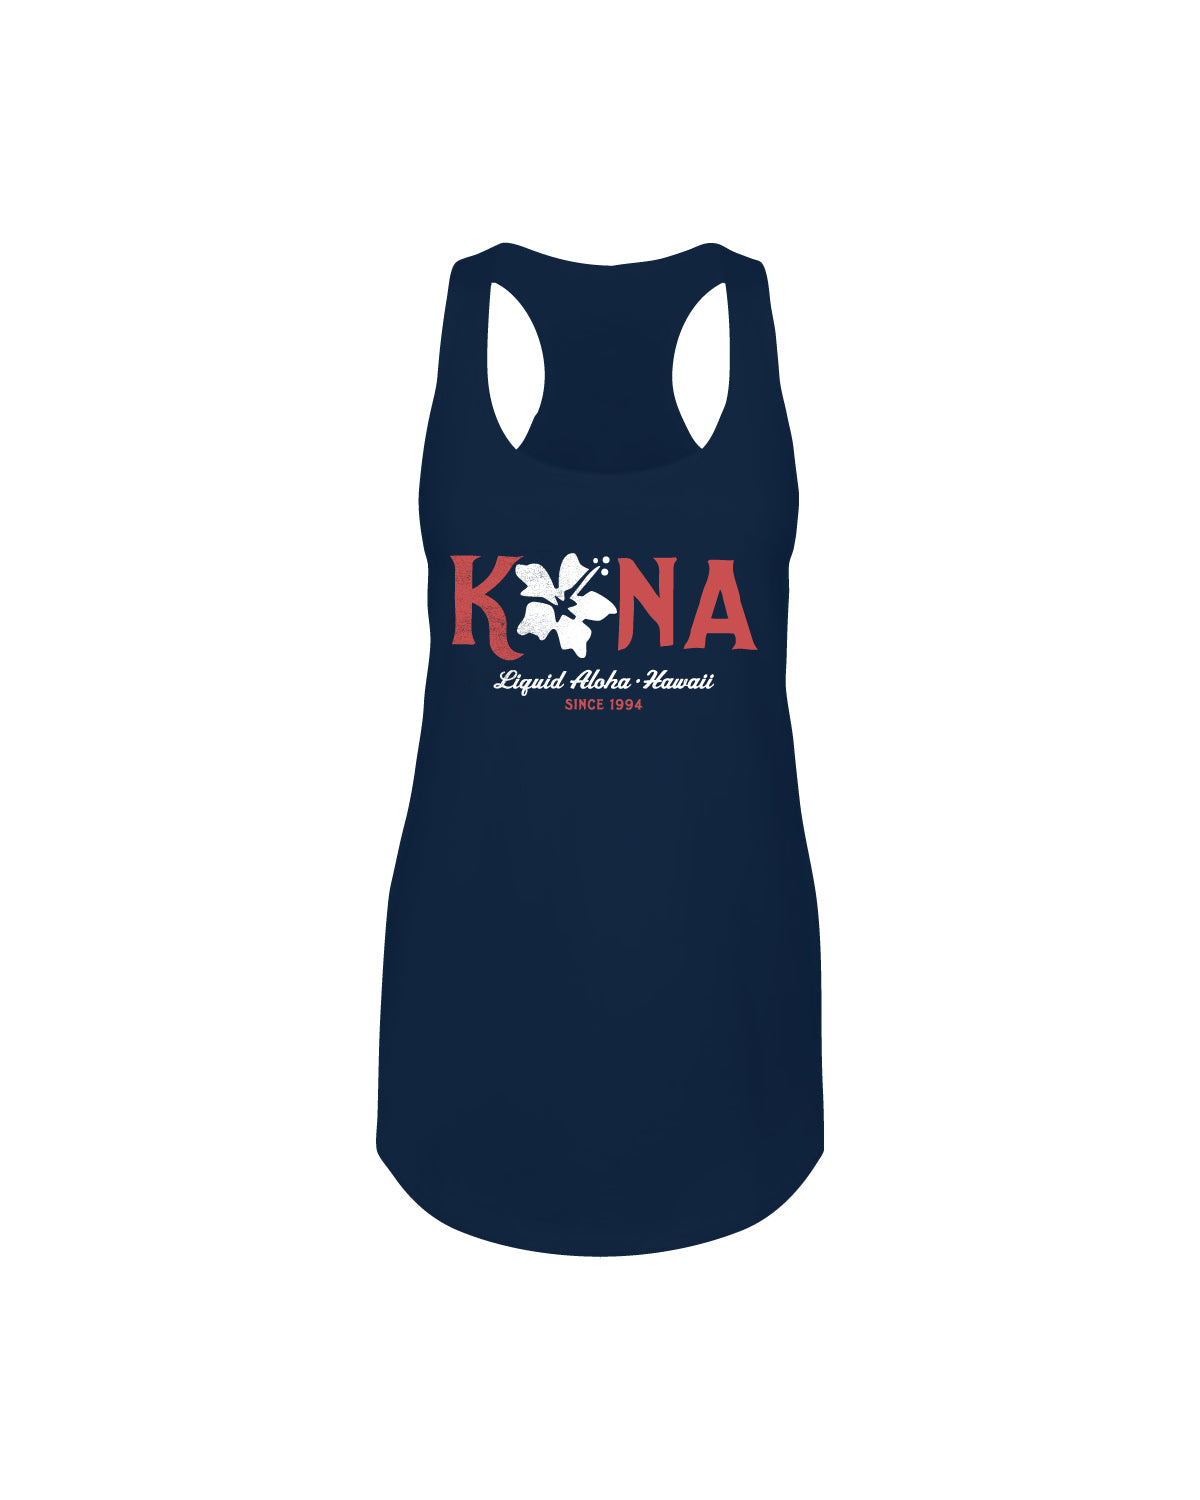 KONA HIBISCUS WOMENS TANK- NAVY - Anderson Bros Design and Supply